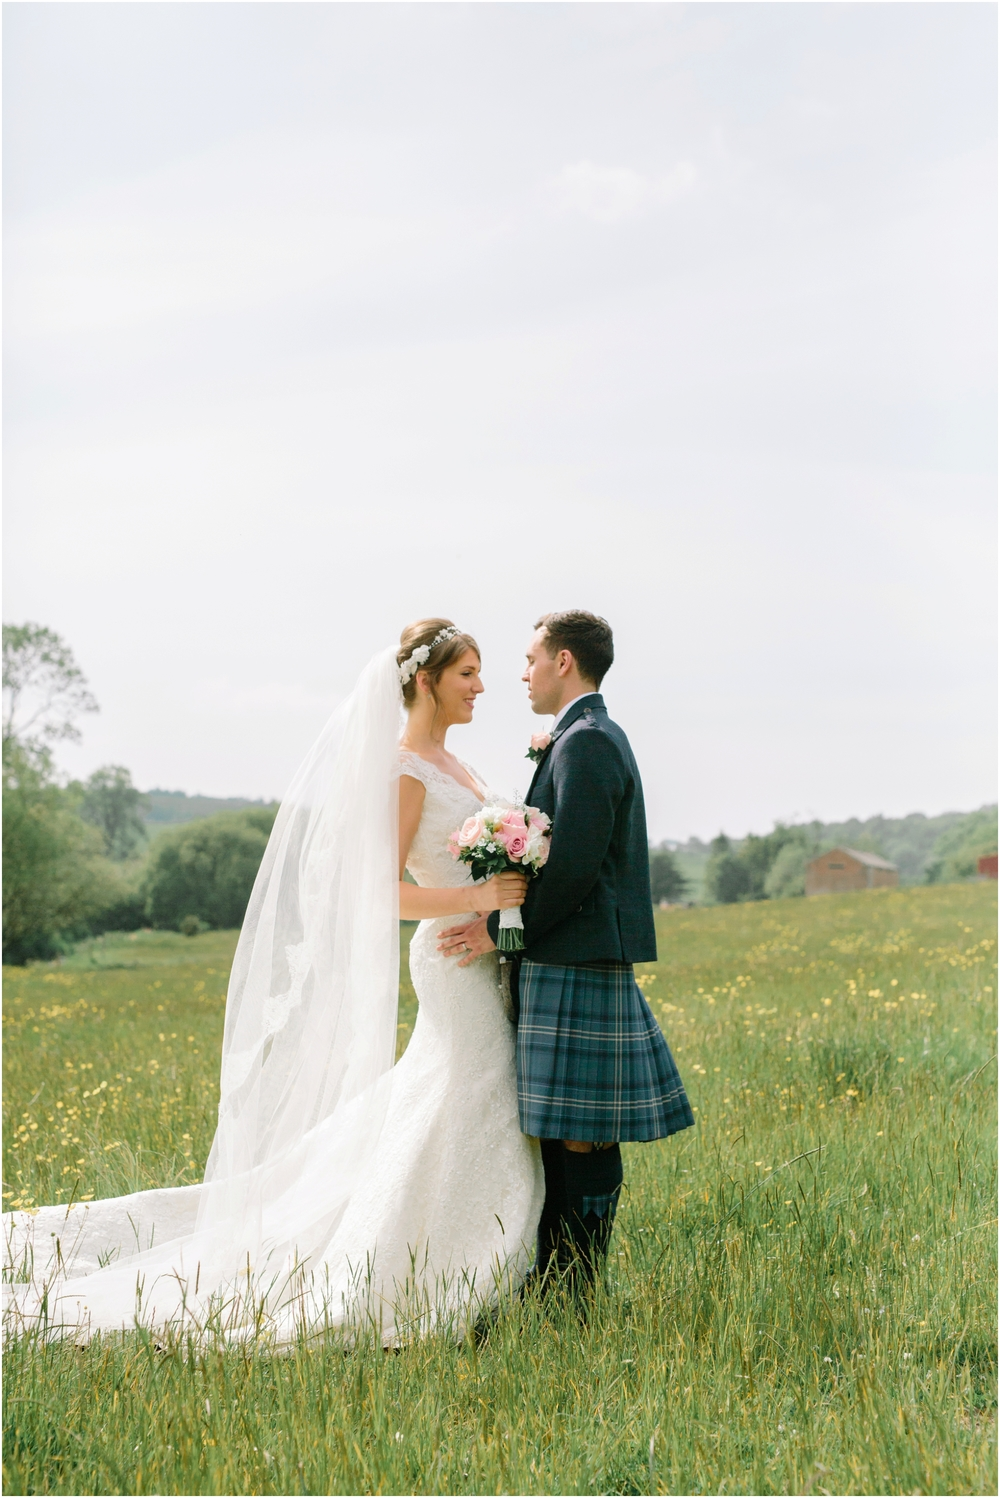 suzanne_li_photography_dalduff_farm_wedding_0042.jpg